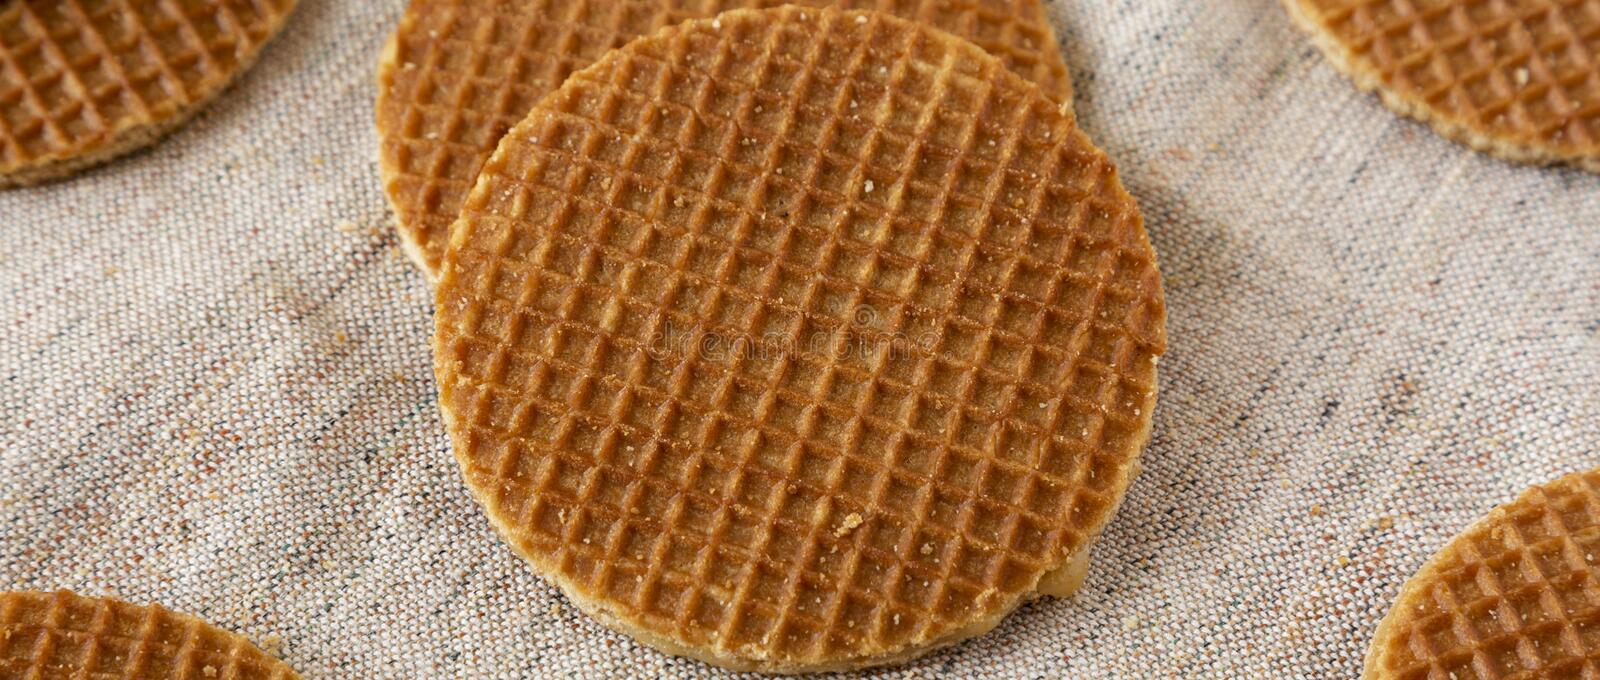 Sweet homemade dutch stroopwafels with honey-caramel filling on cloth, low angle view. Closeup.  stock images